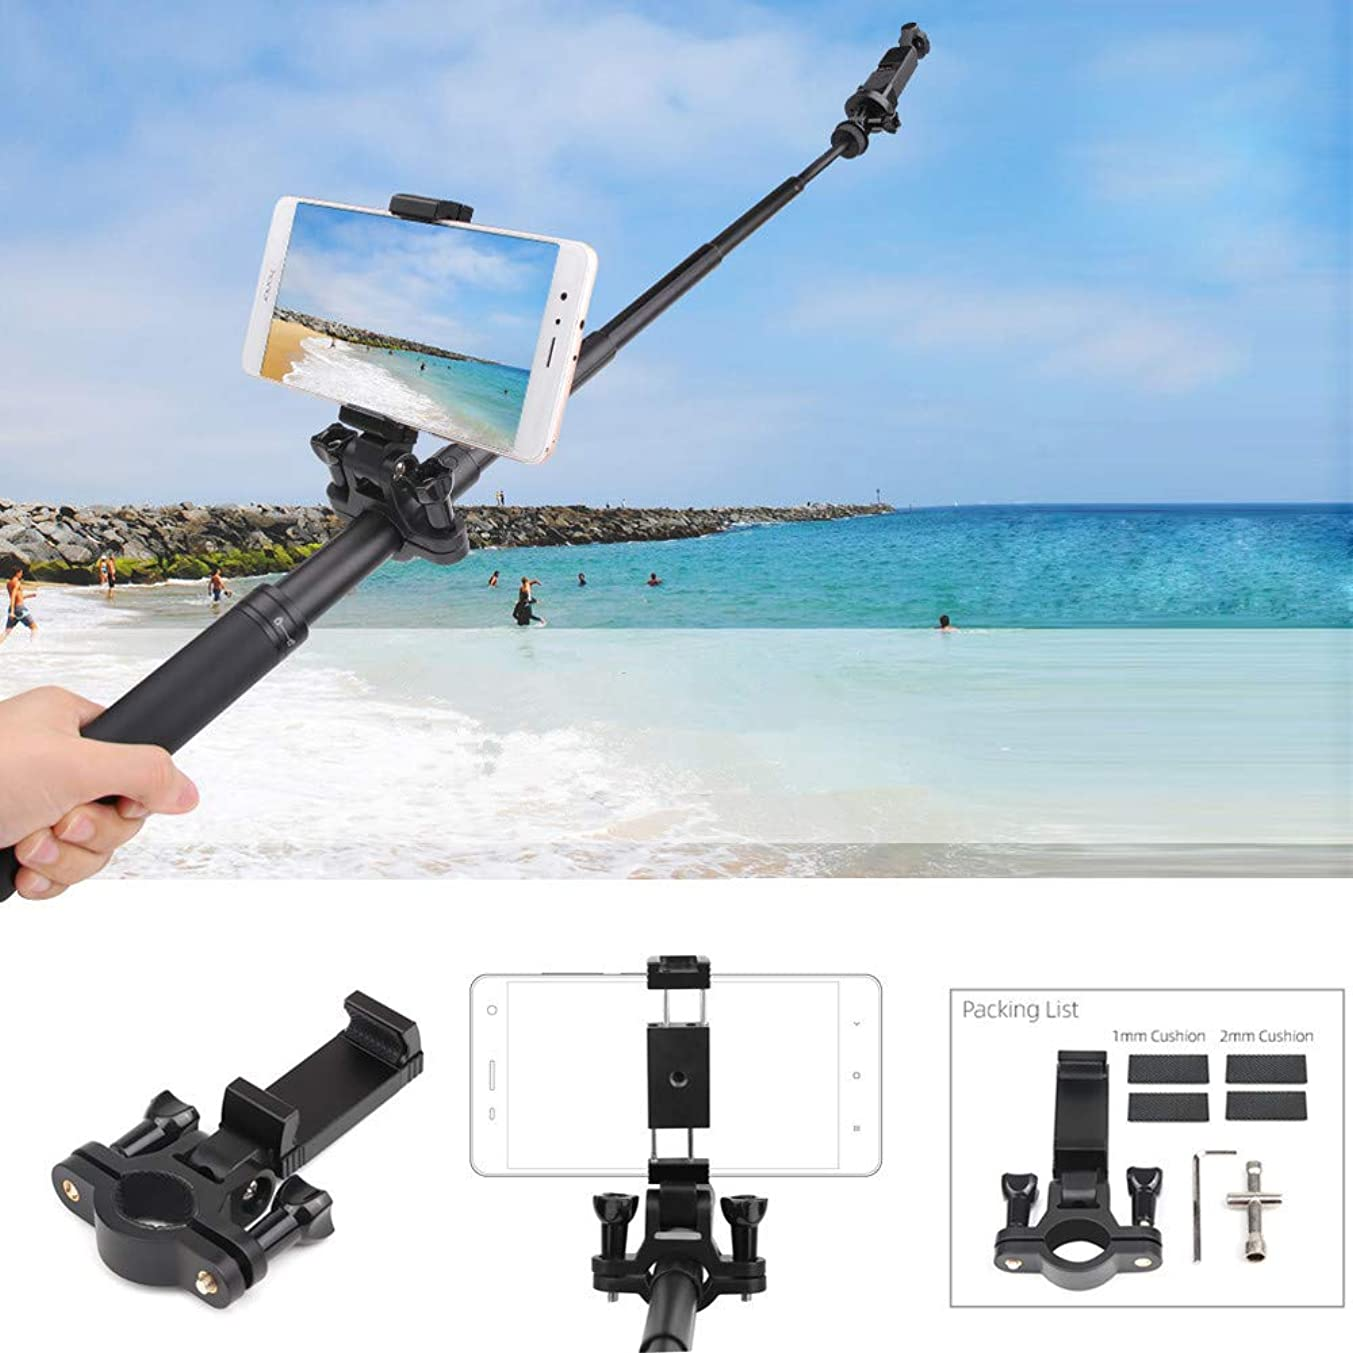 Solovley Smartphone Holder, Bluetooth Adapter Bracket On Extension Rod for DJI OSMO Pocket/ OSMO Action Camera